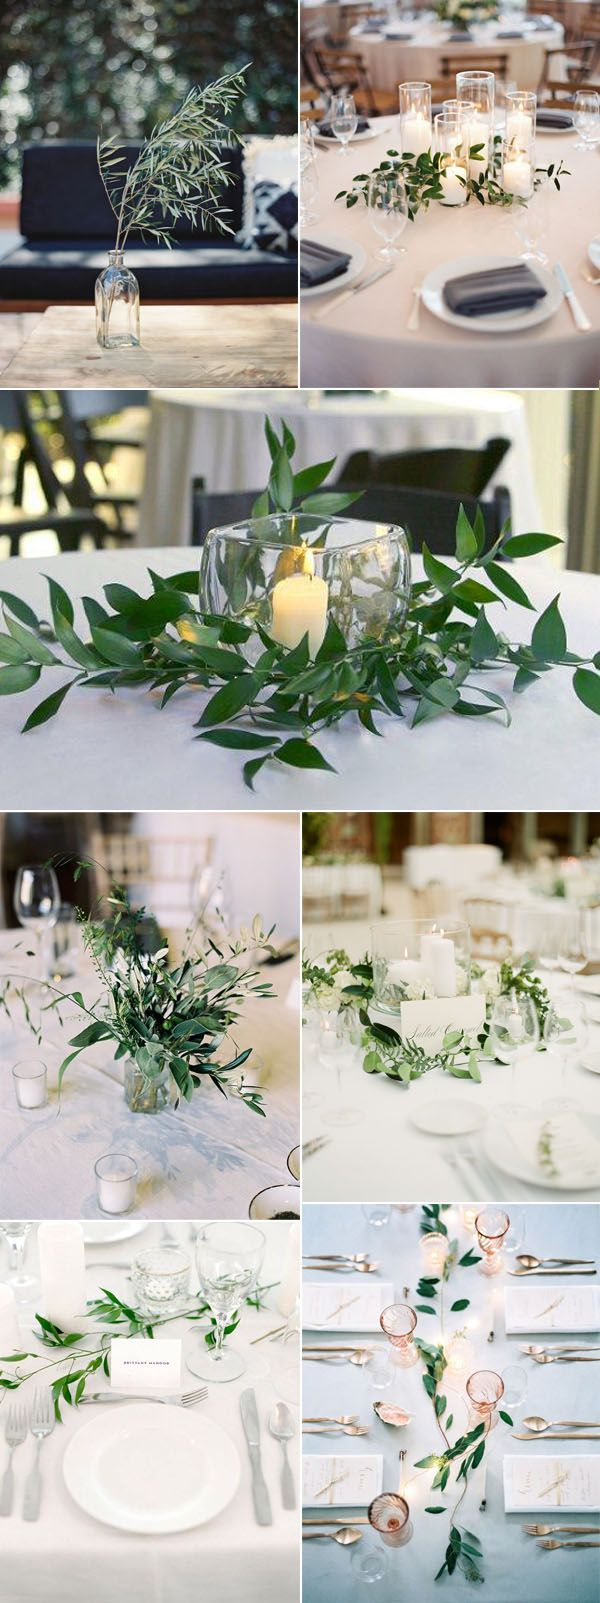 156 best wedding centerpieces images on pinterest flower creative botanical wedding table centerpieces for minimalist weddings junglespirit Choice Image